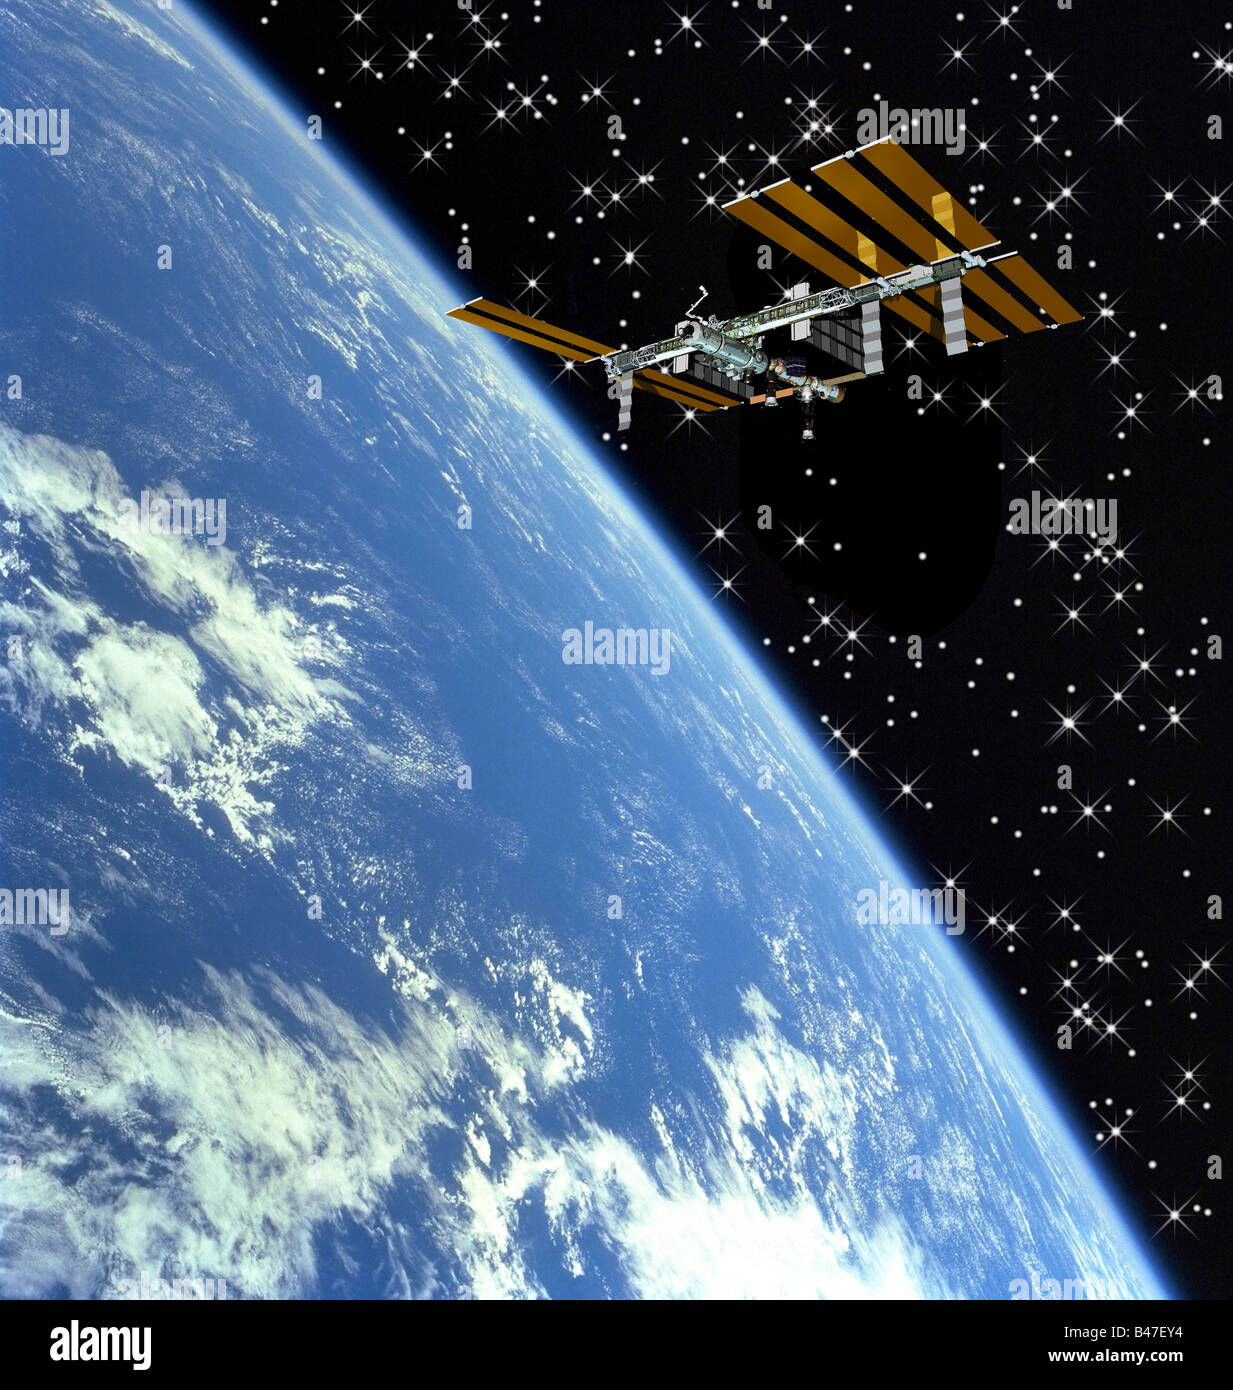 International Space Station (ISS) flying above earth - Stock Image